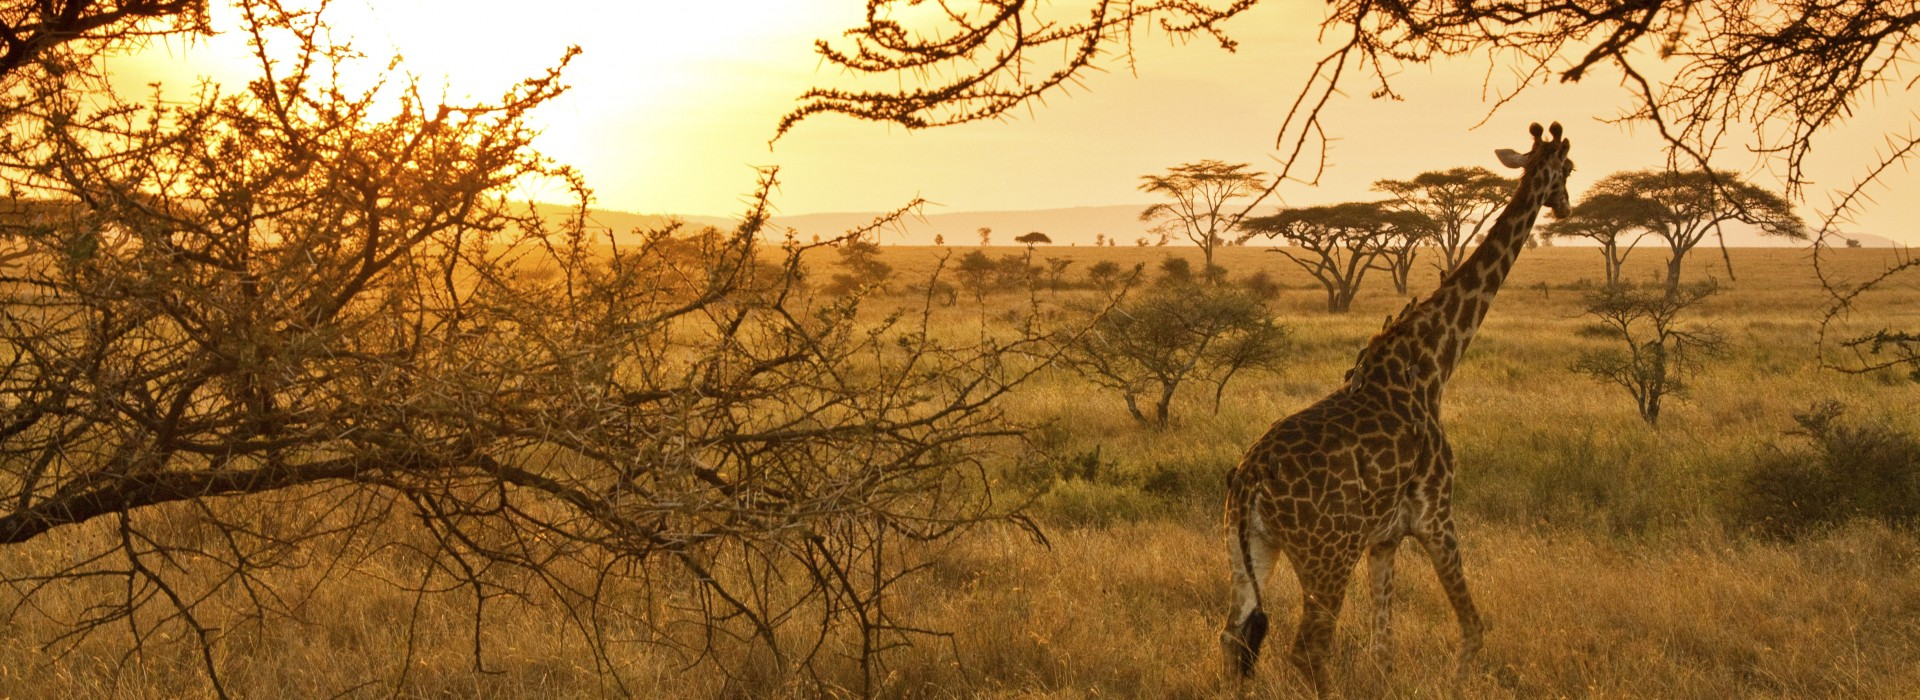 Serengeti National Park >> Safari In Serengeti National Park In Tanzania Bookmundi Com